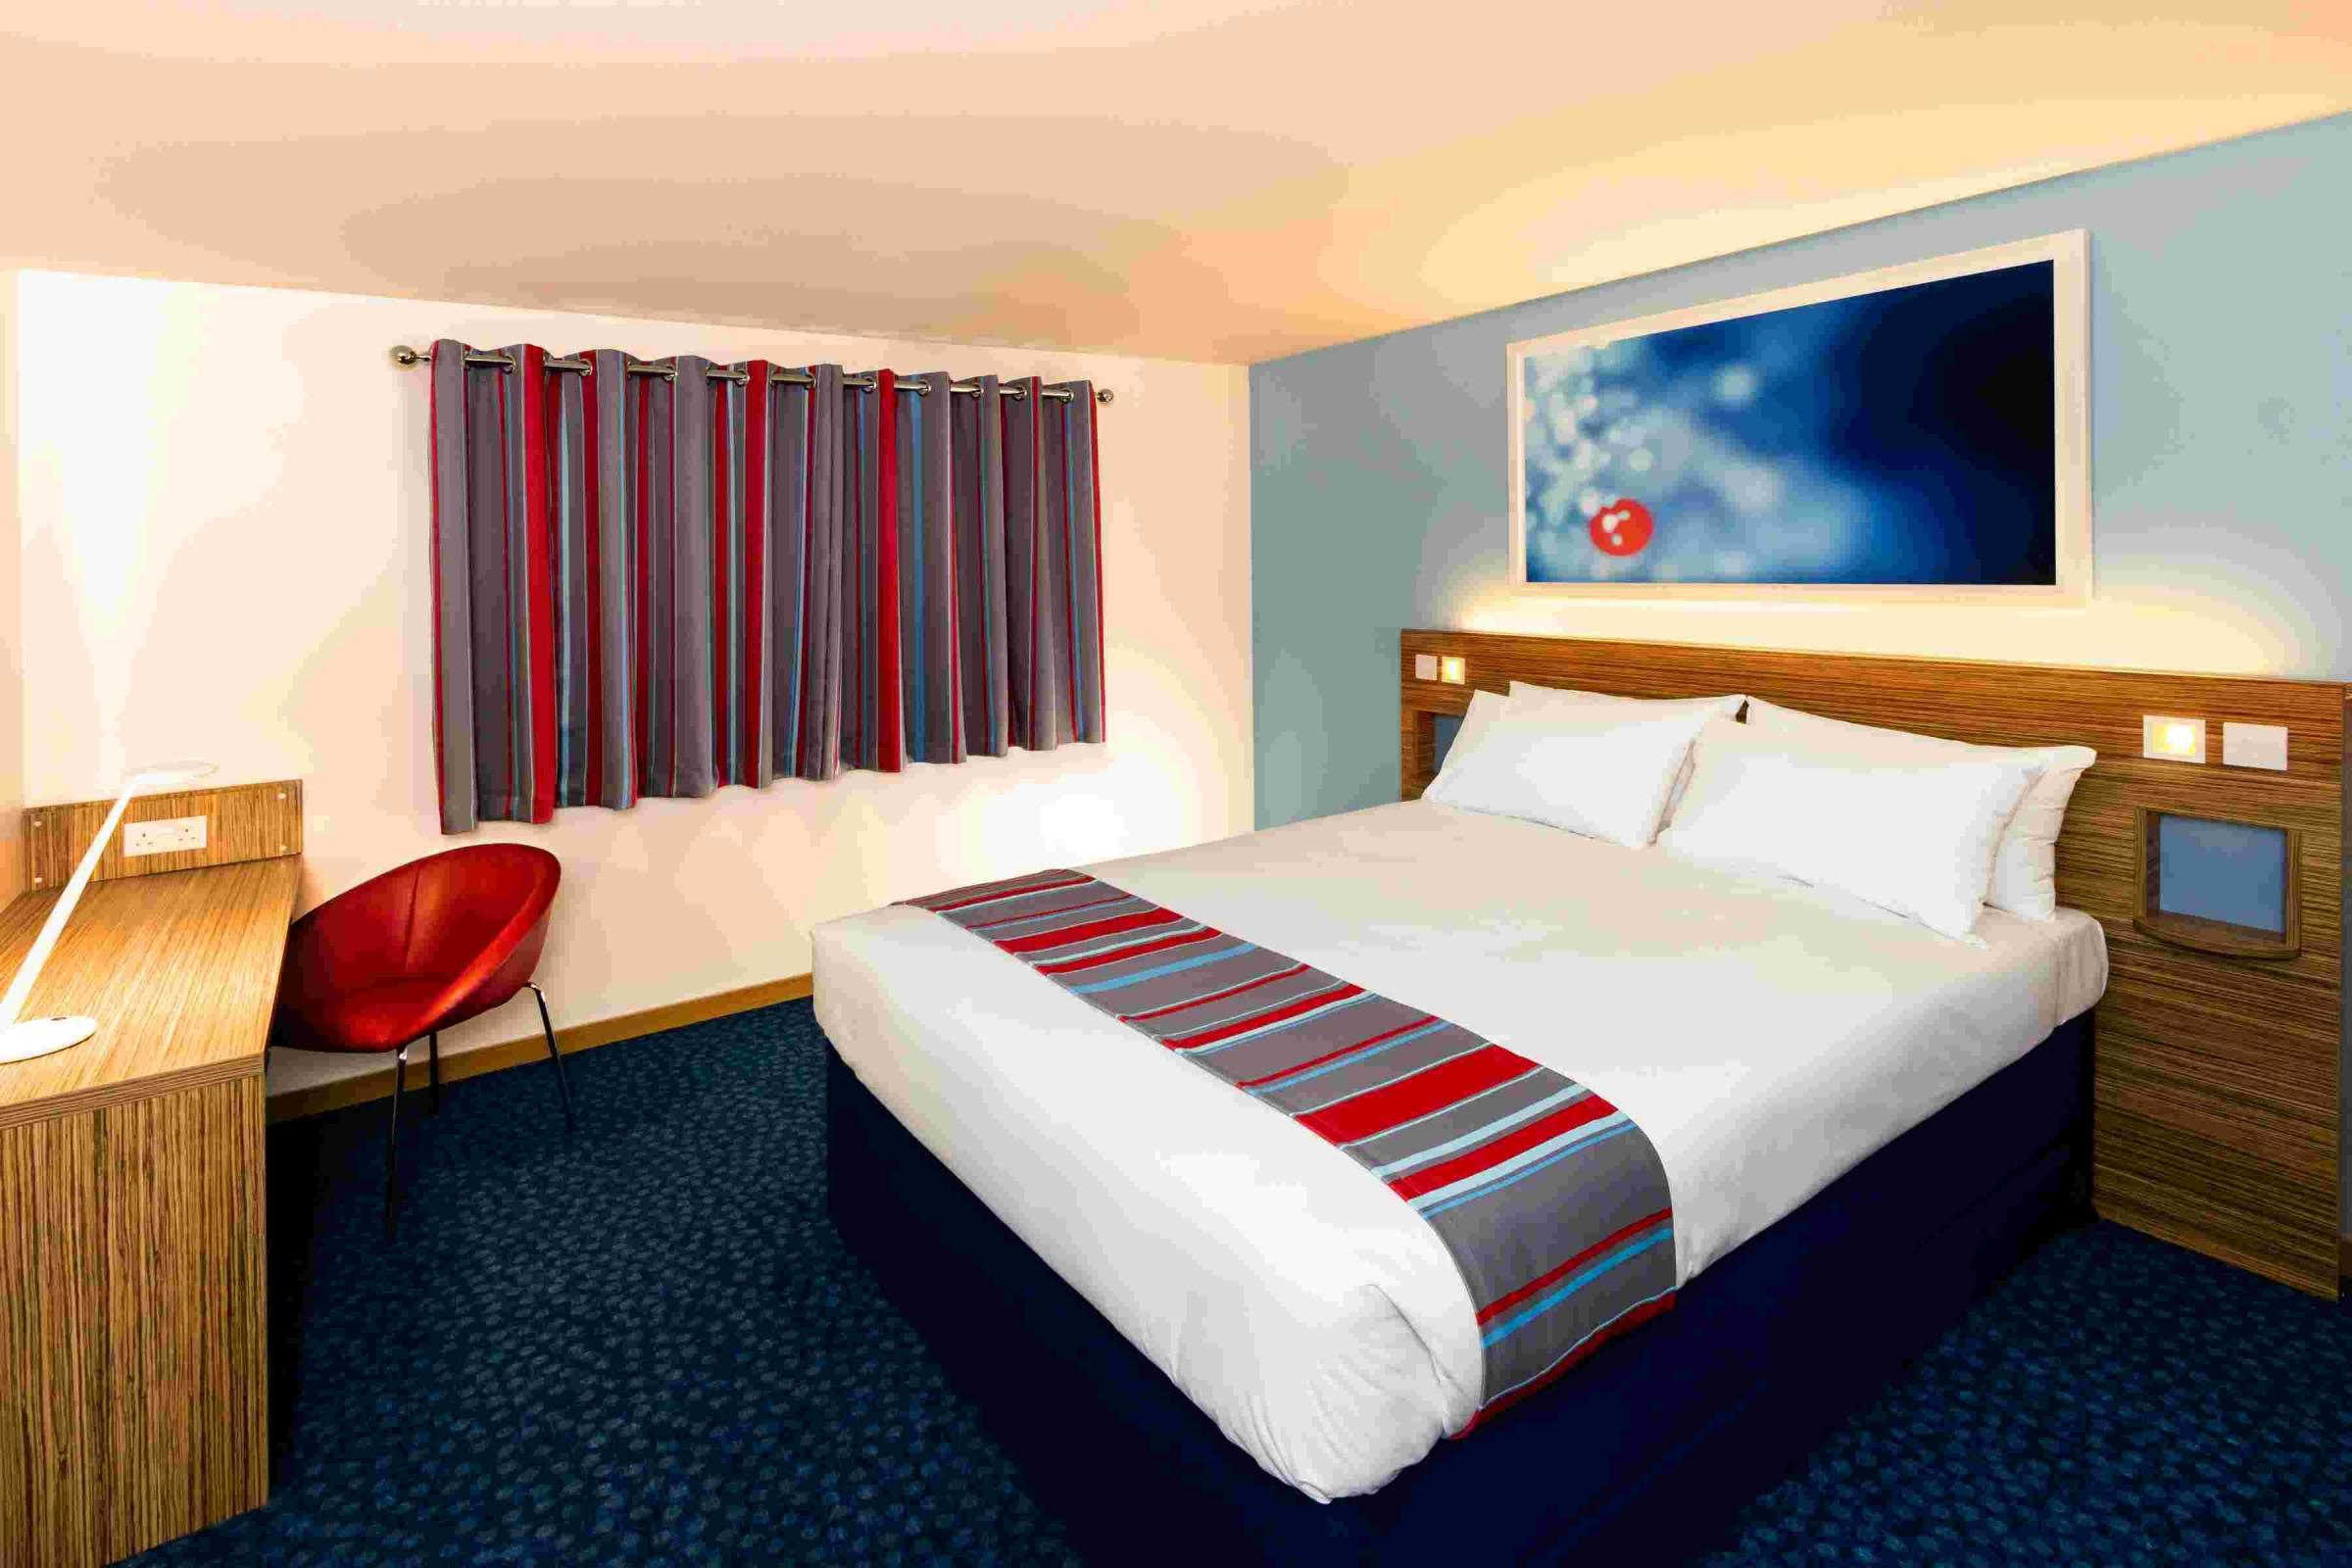 The new and improved Travelodge room, featuring the 'Dreamer'